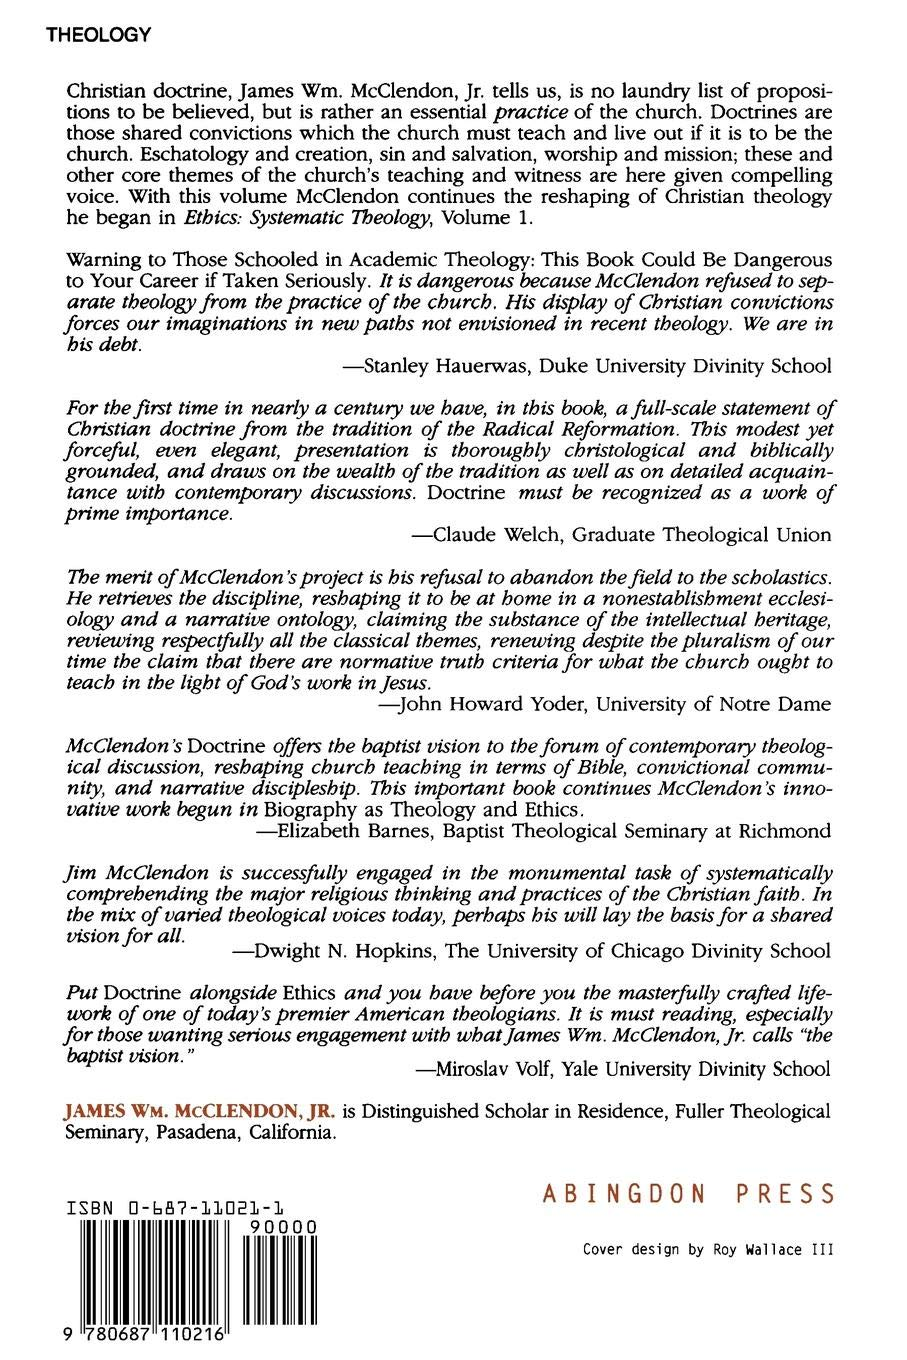 systematic theology vol 2 doctrine james william mcclendon jr